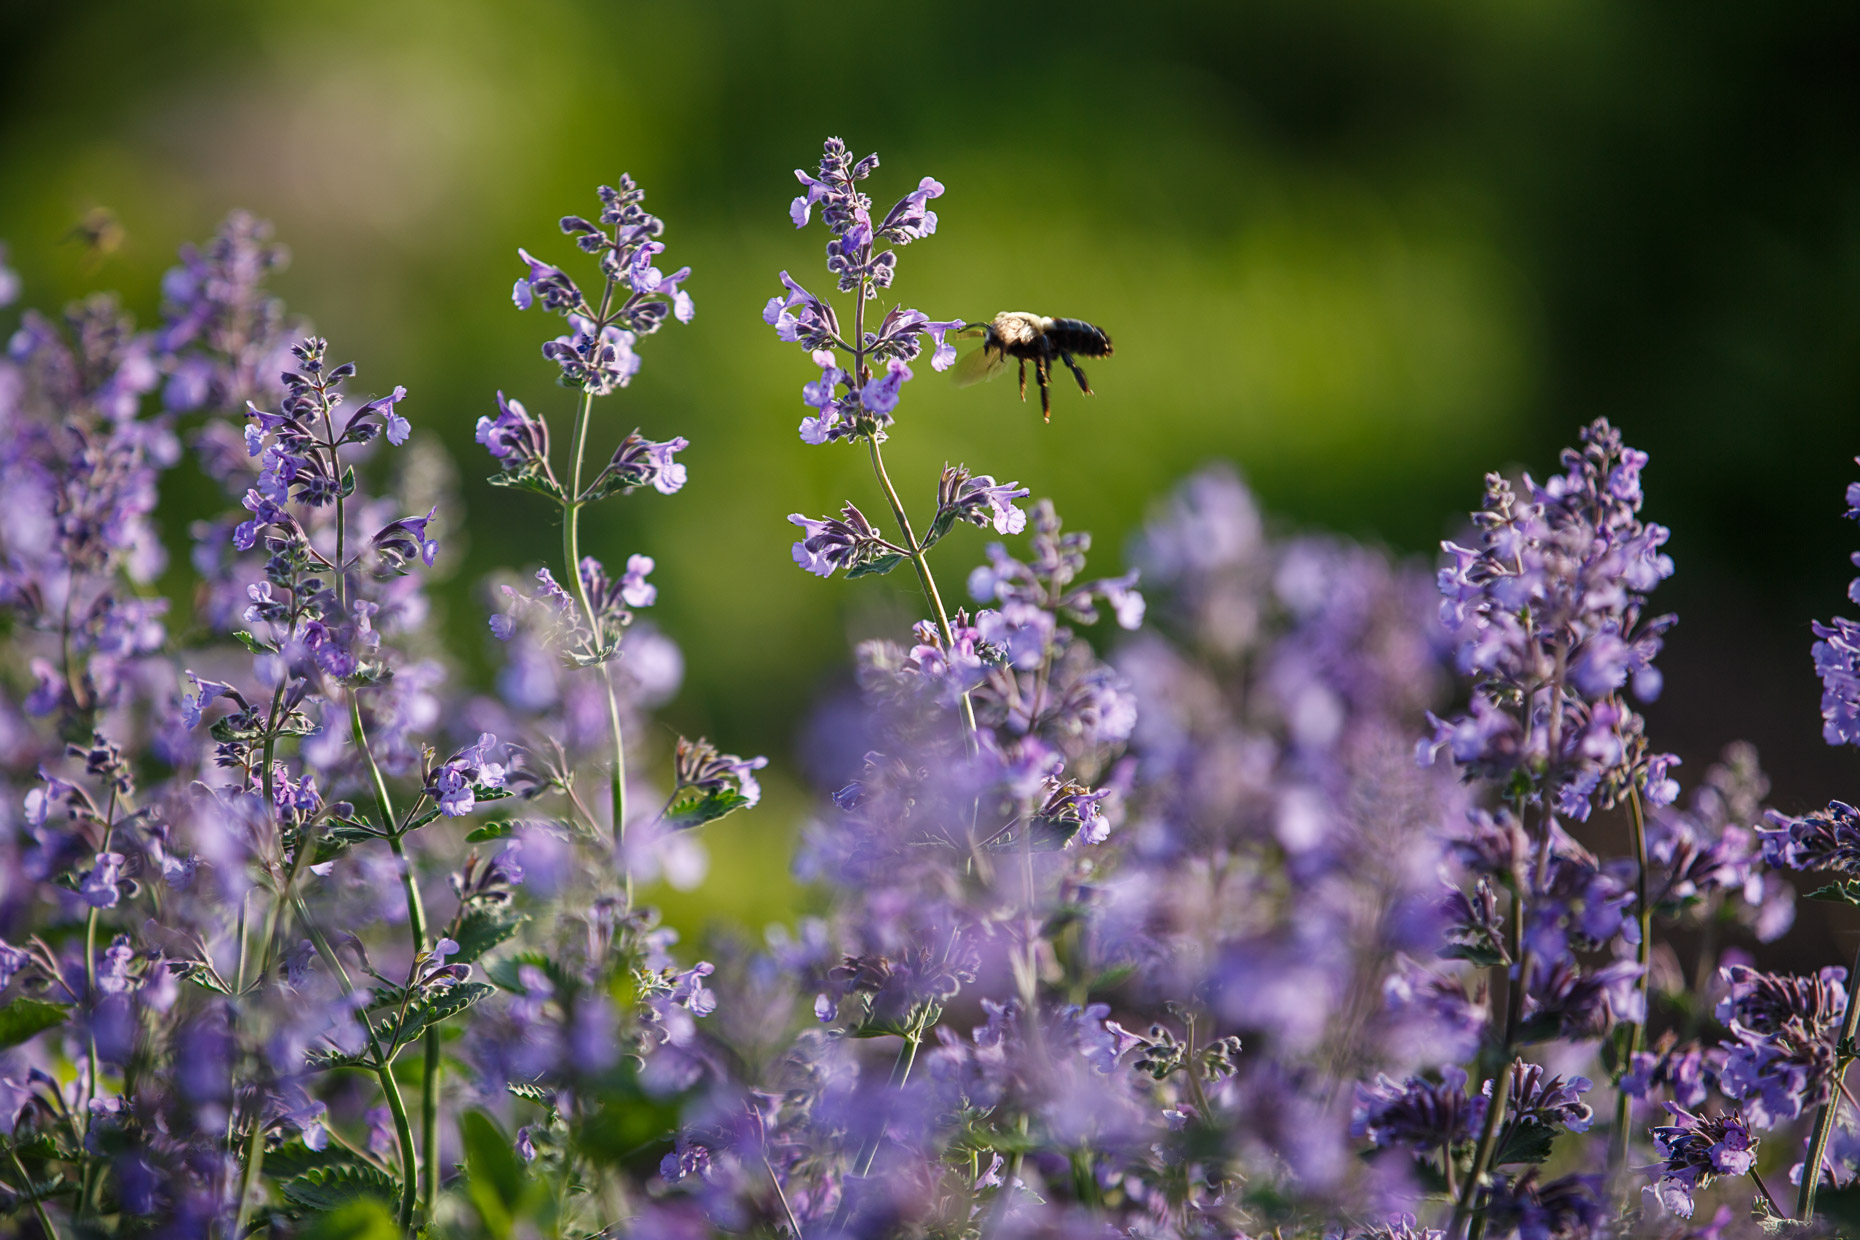 closeup of a catmint plant and pollinator in Alice